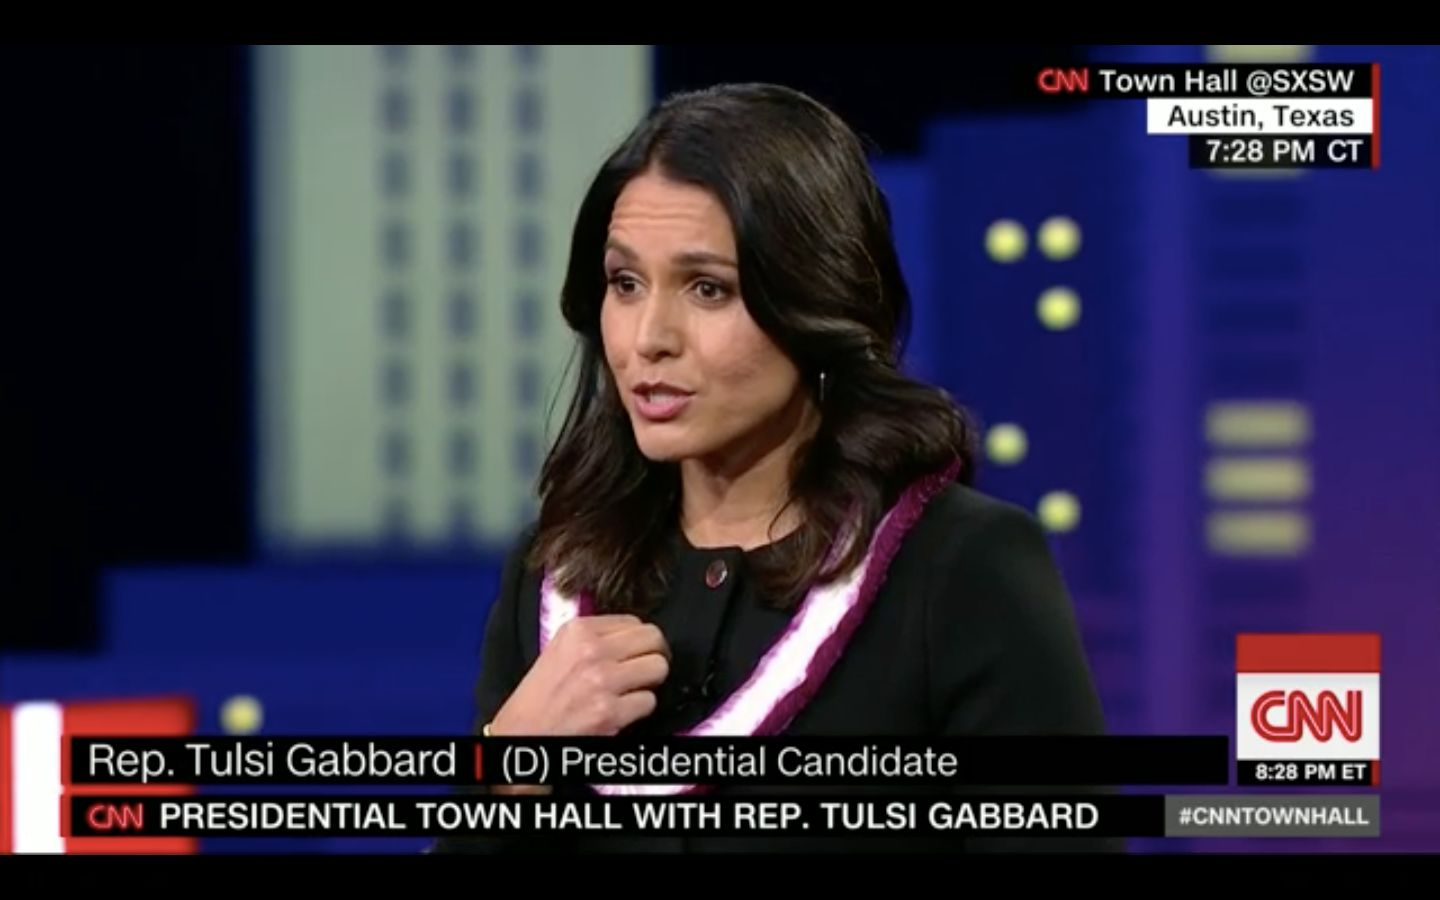 Gabbard On Assad: 'Evidence Has To Be Gathered' On Whether He Is A War Criminal